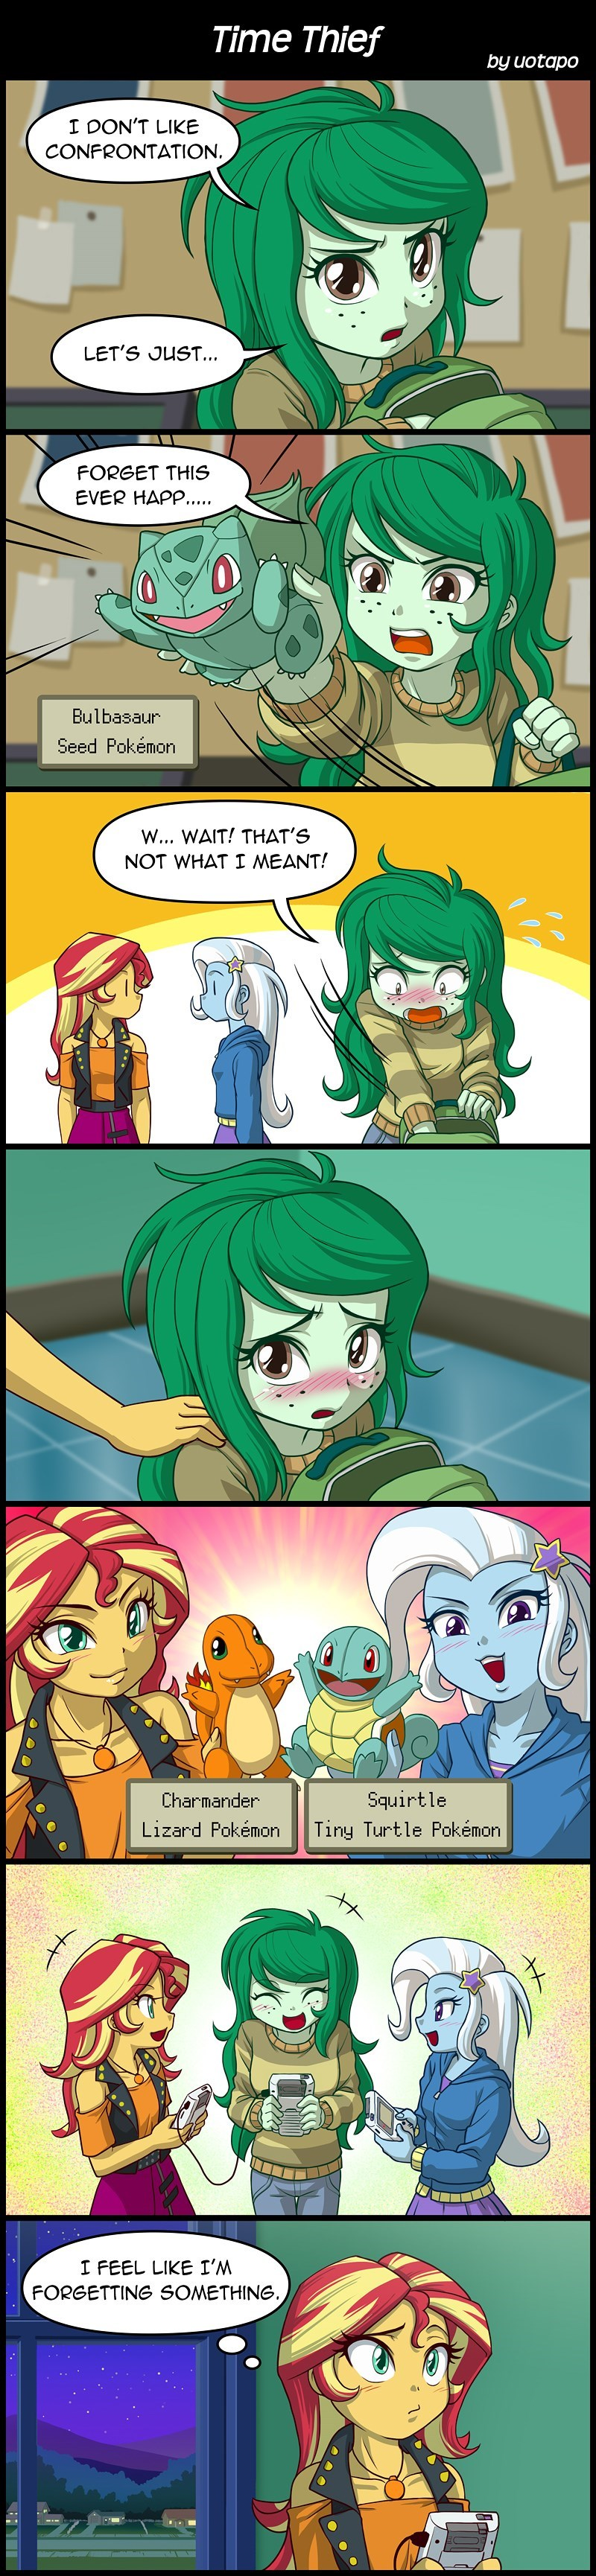 forgotten friendship the great and powerful trixie Pokémon equestria girls uotapo bad end wallflower blush comic sunset shimmer - 9243580928